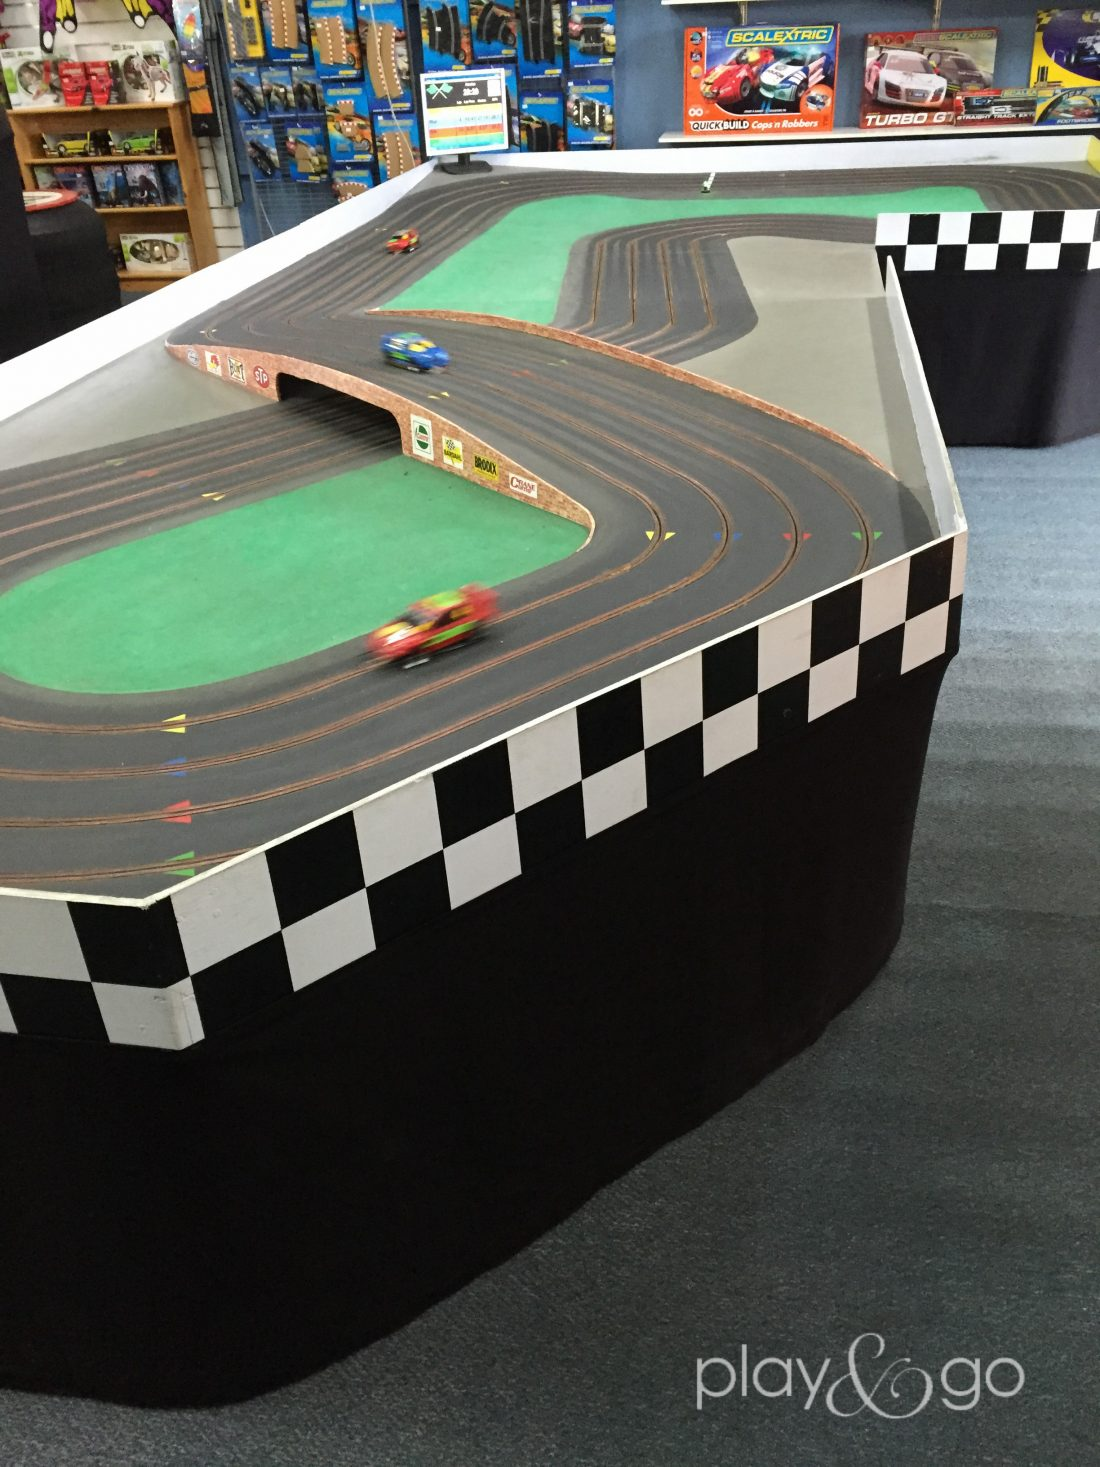 Slot car racing birthday parties adelaide is online poker a good way to make money